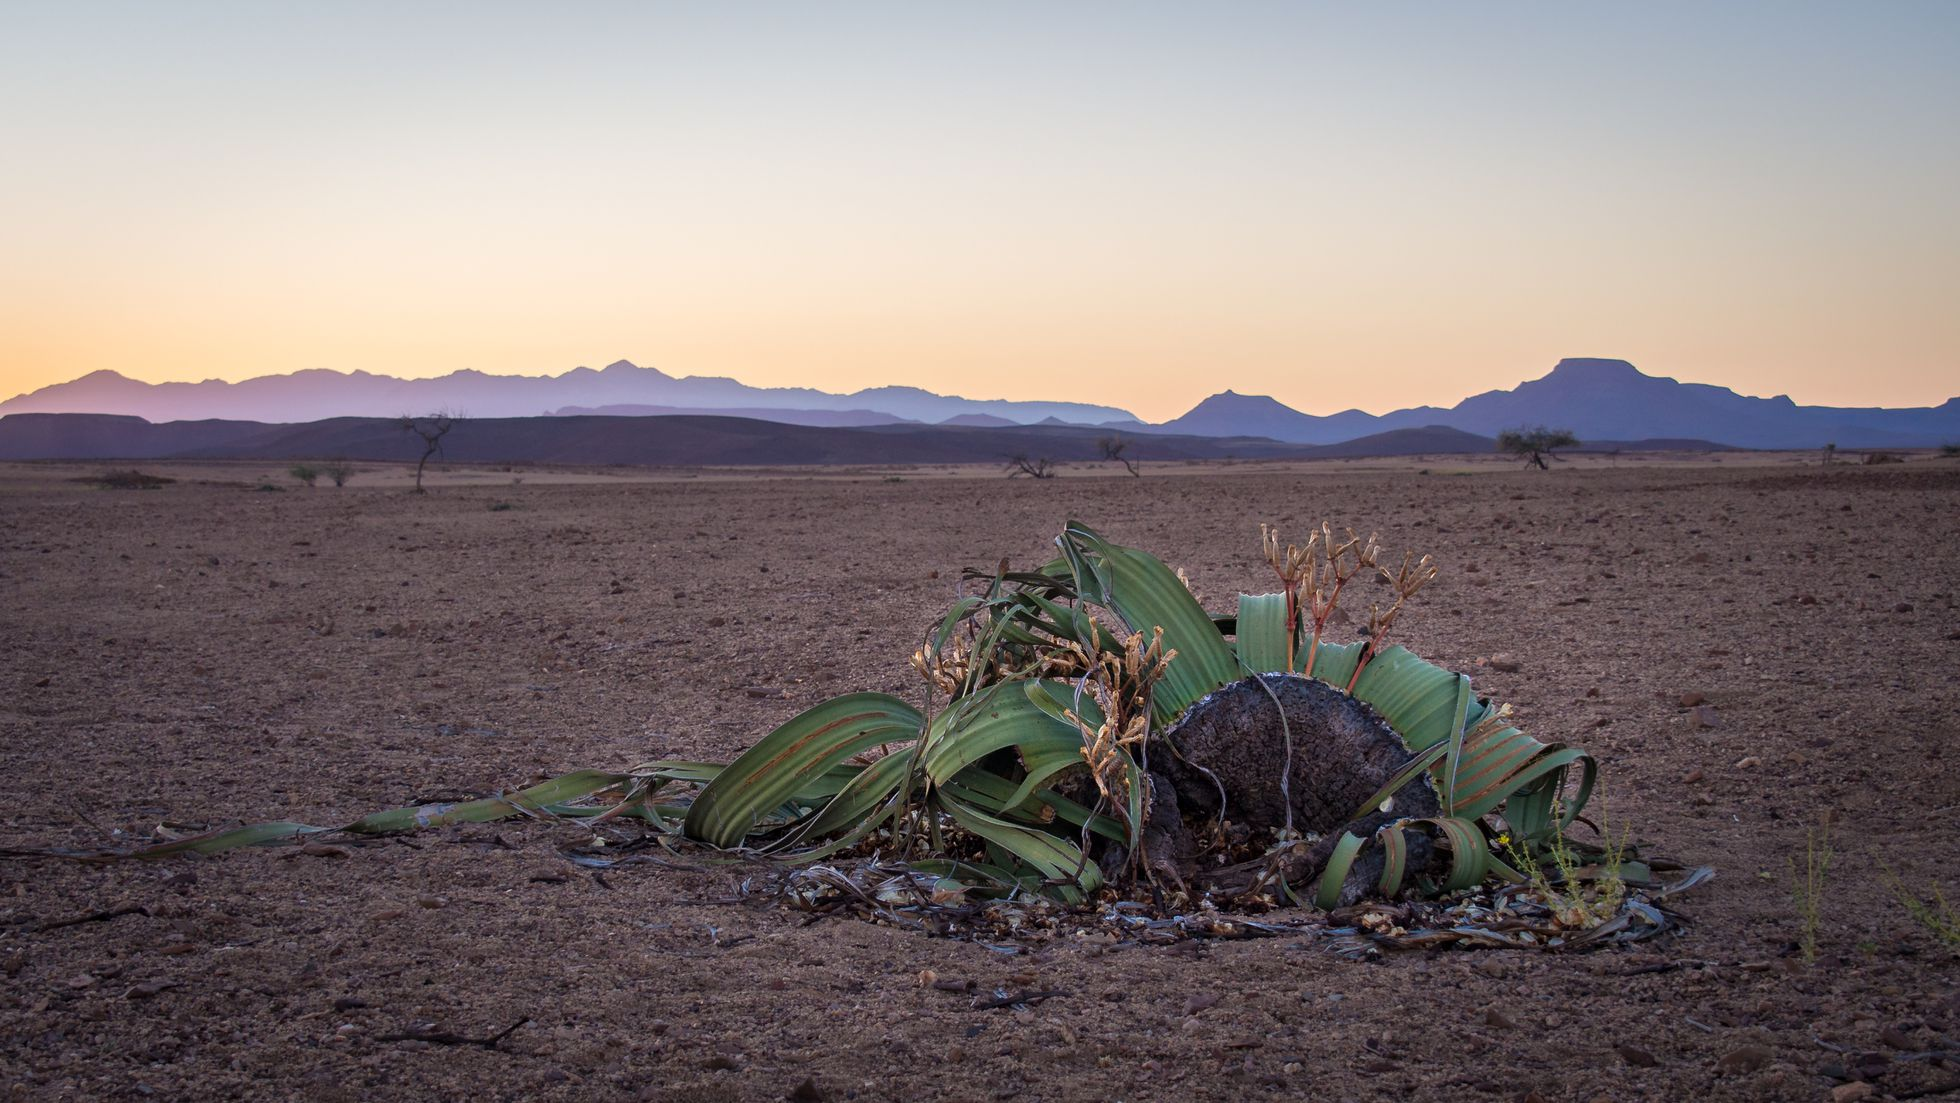 The plant that borders on immortality, the Welwitschia.